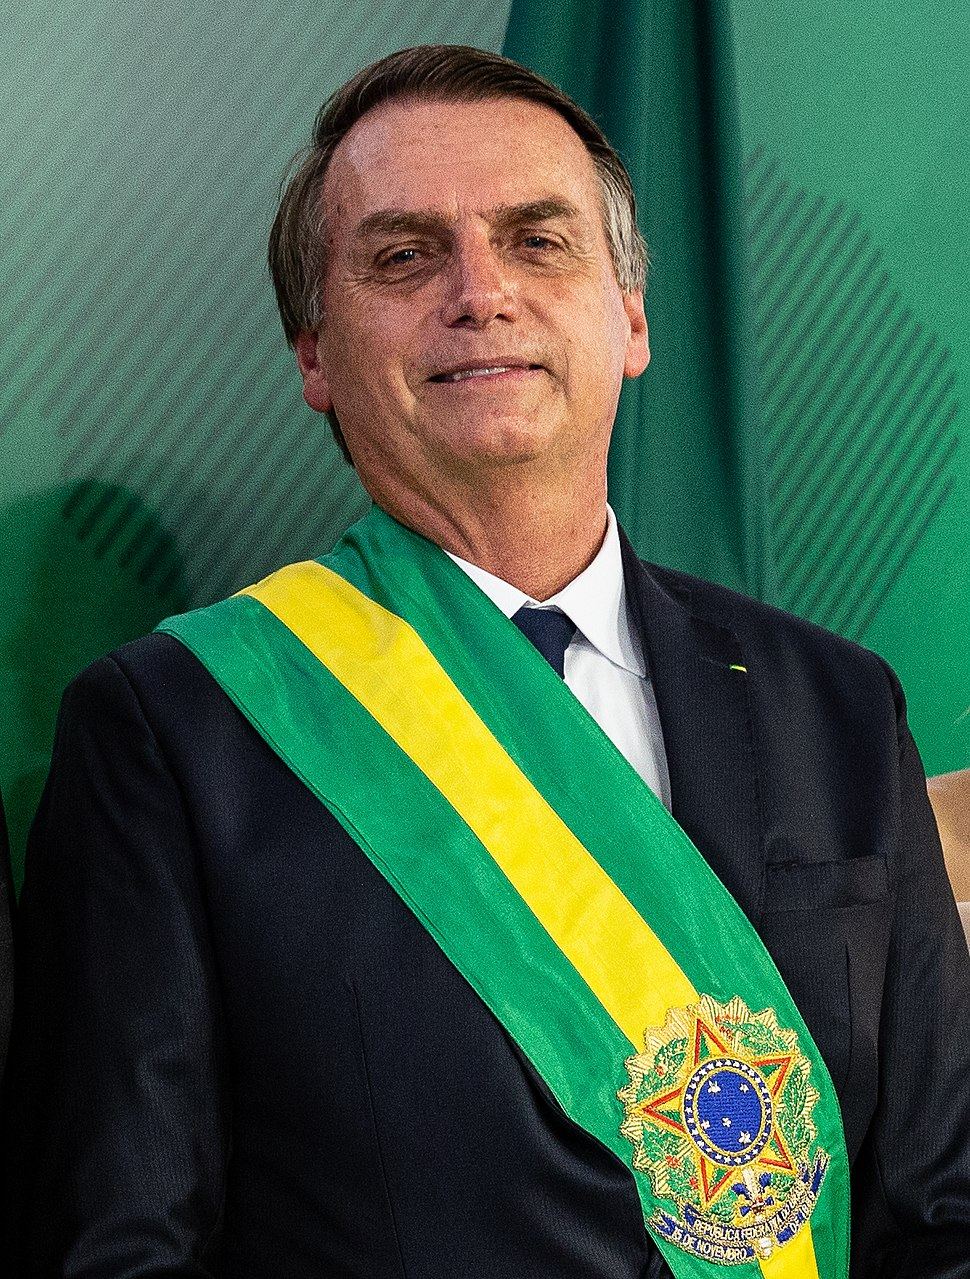 Presidente Jair Messias Bolsonaro